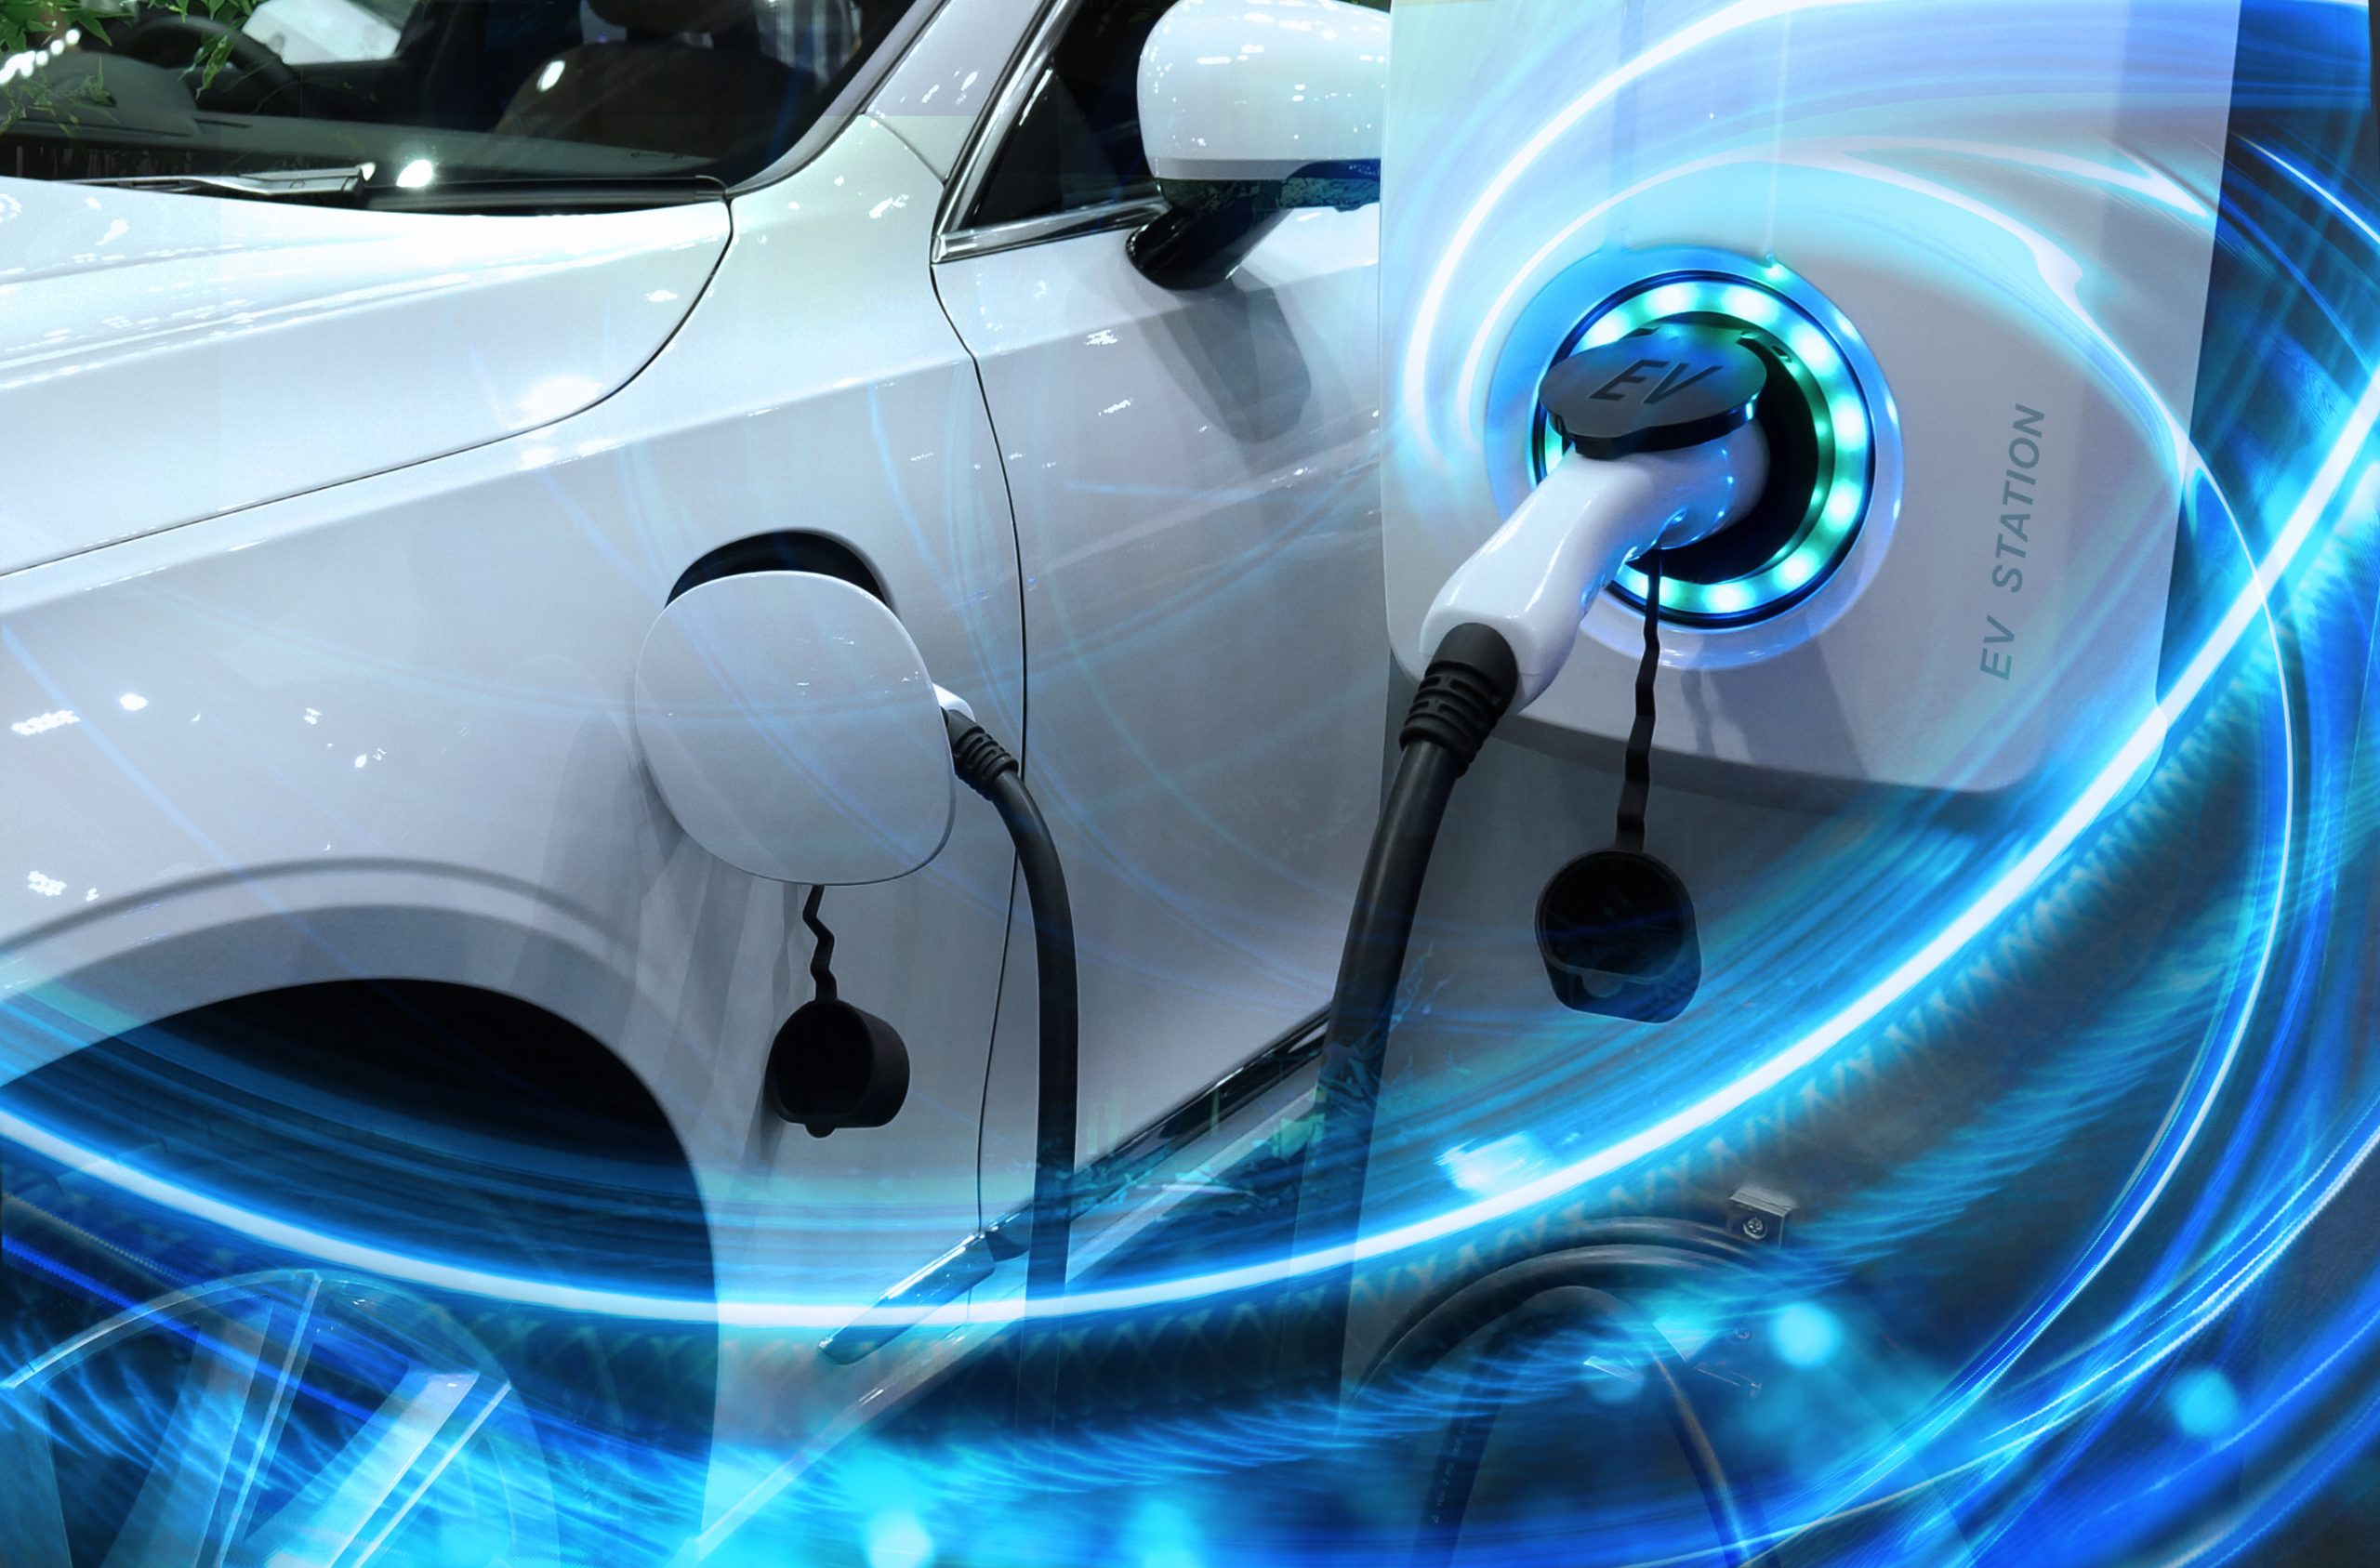 Global Electric Vehicle Sales Up 160% in H1 2021 Despite Supply Constraints